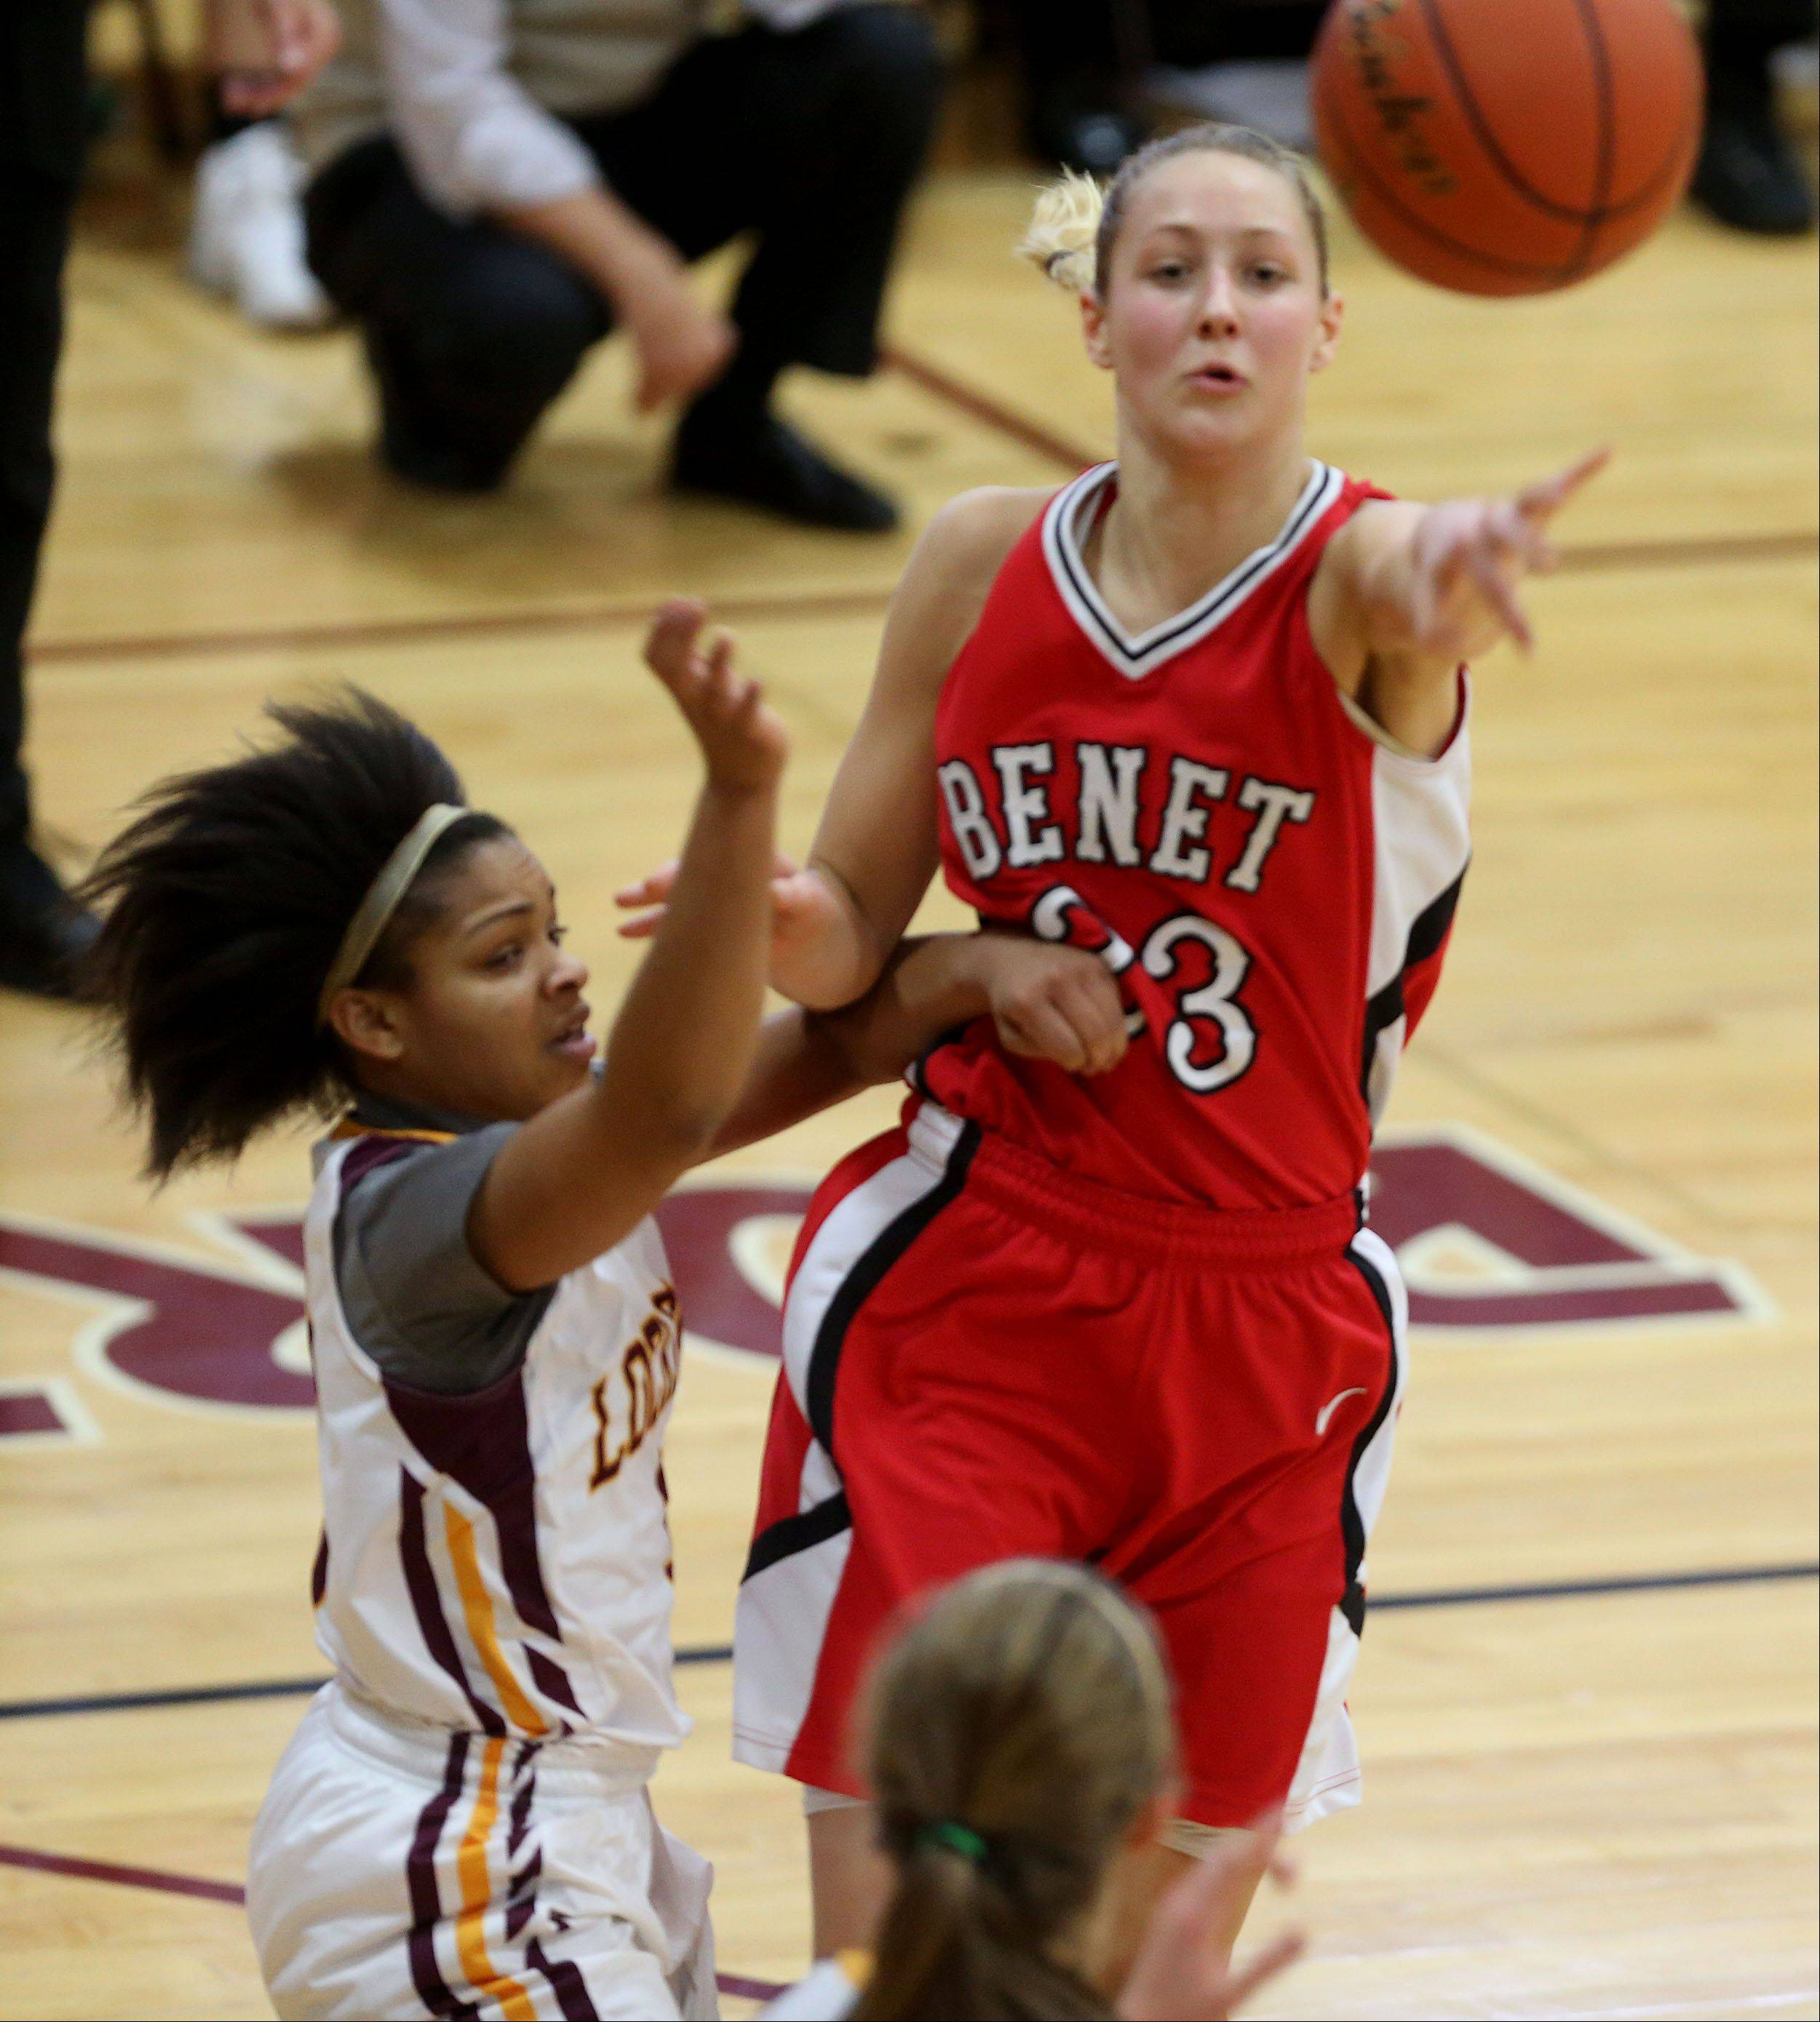 Benet's Emily Eshoo works against the Lockport defense during girls basketball action.